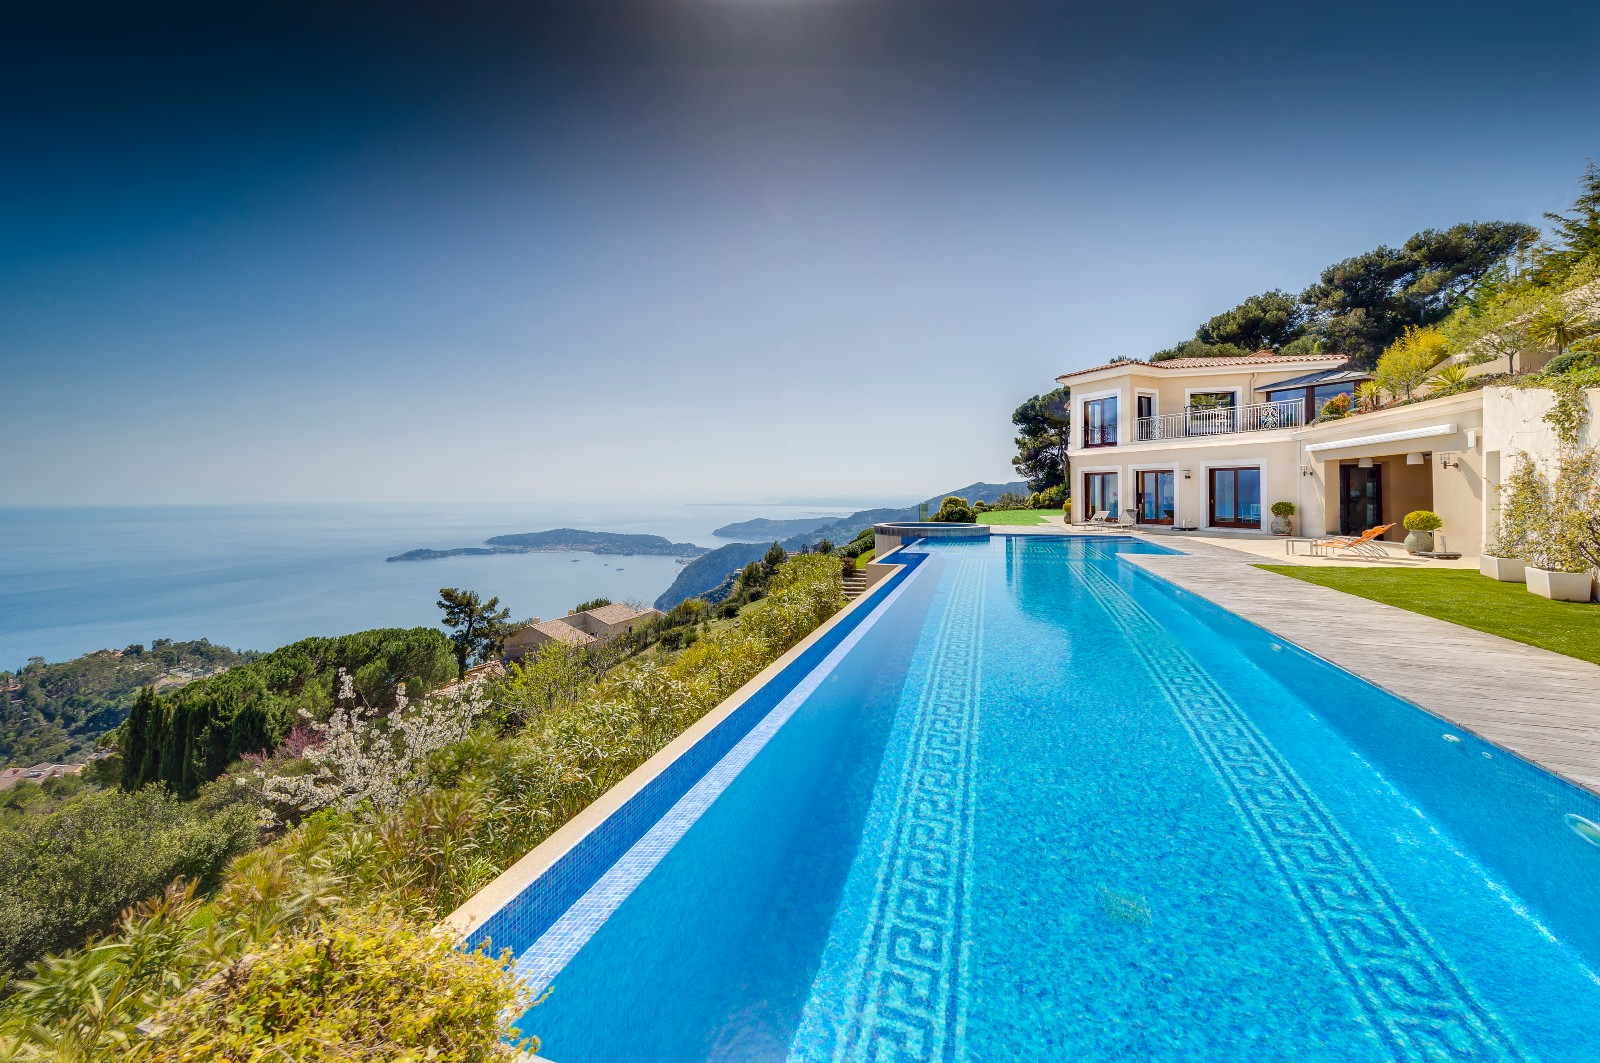 EZE - LUXURIOUS PROPERTY FOR RENT